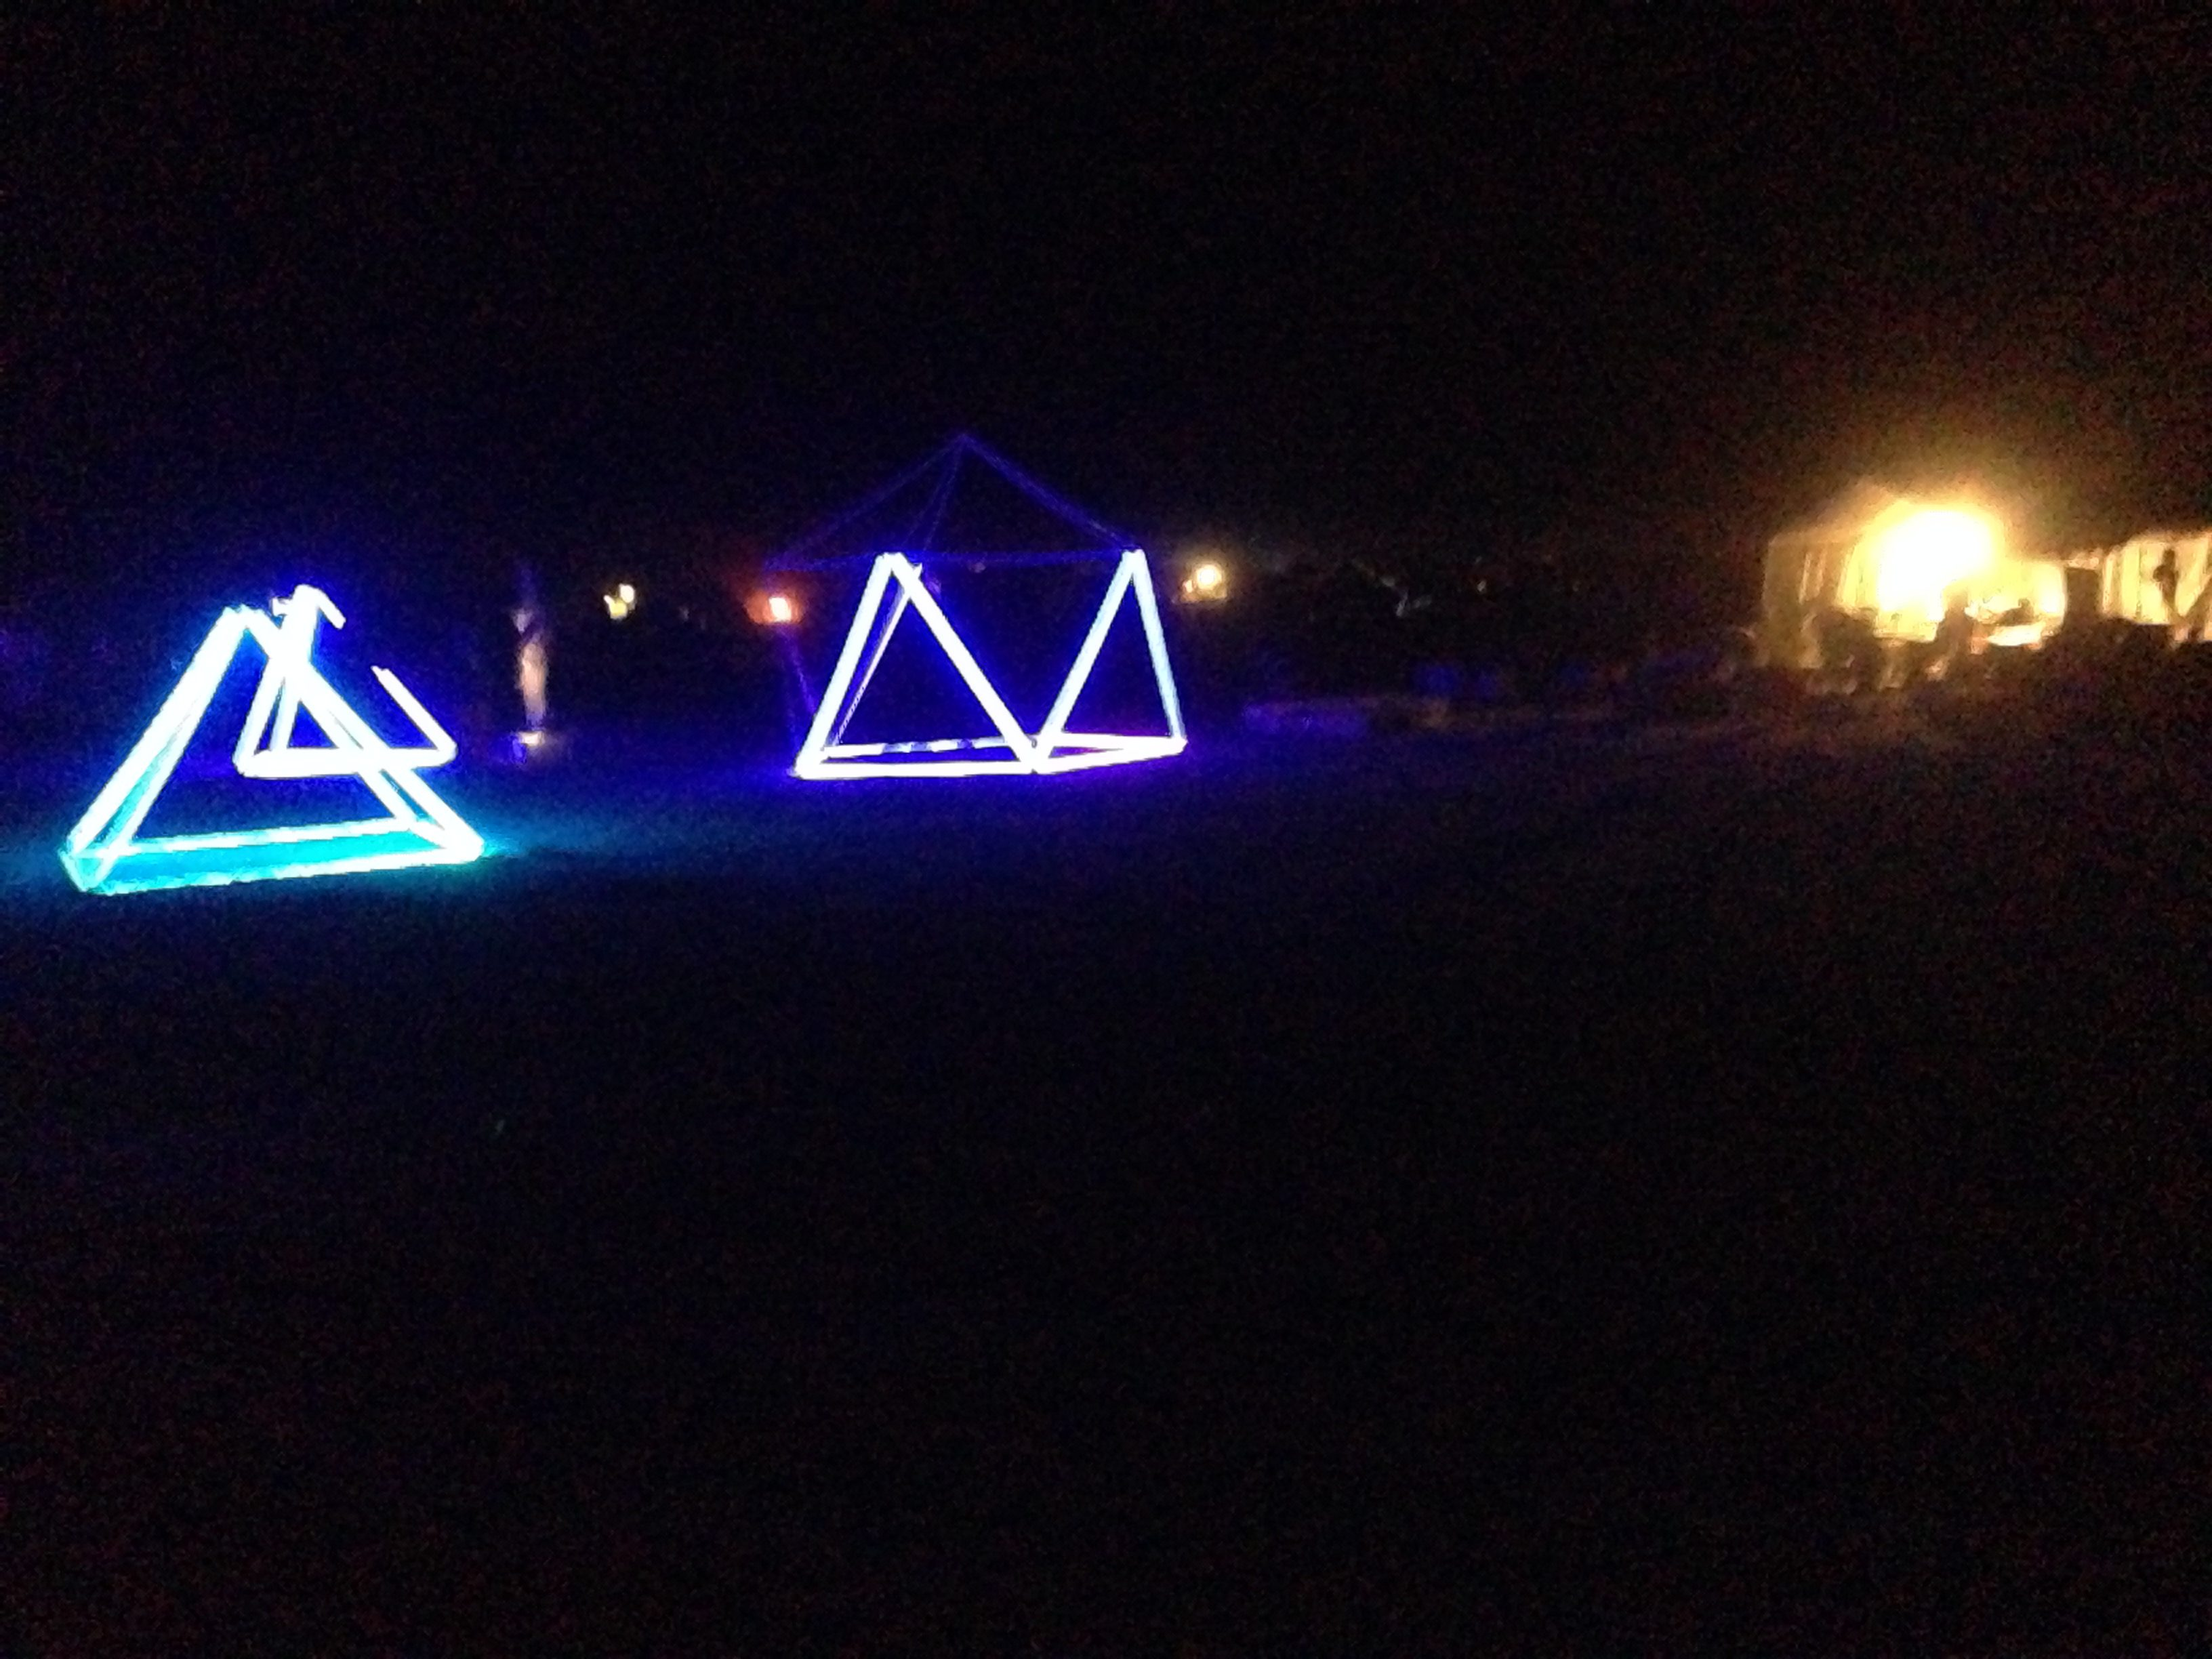 The tradition of geometric-shaped art cars continues.  Here we see the Square Pyramid and Projected Icosahedron.